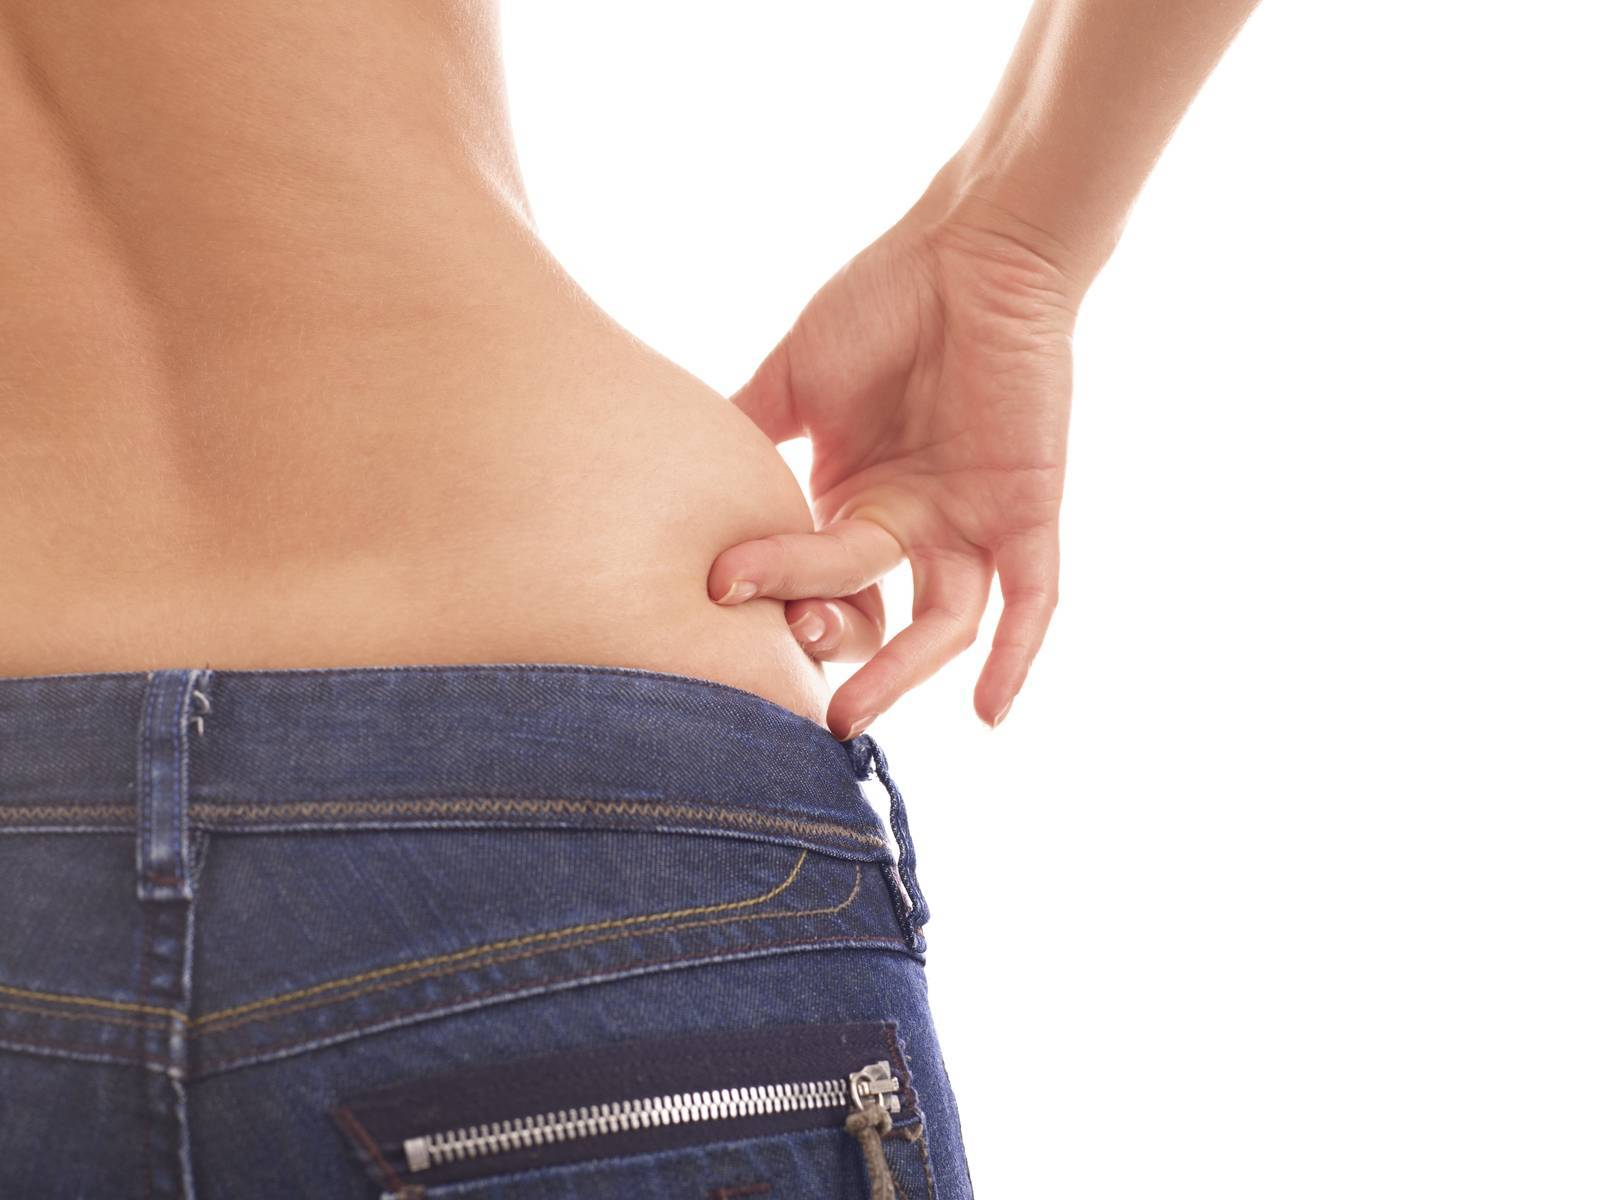 Probiotics Promote Weight Loss & Reduce BMI